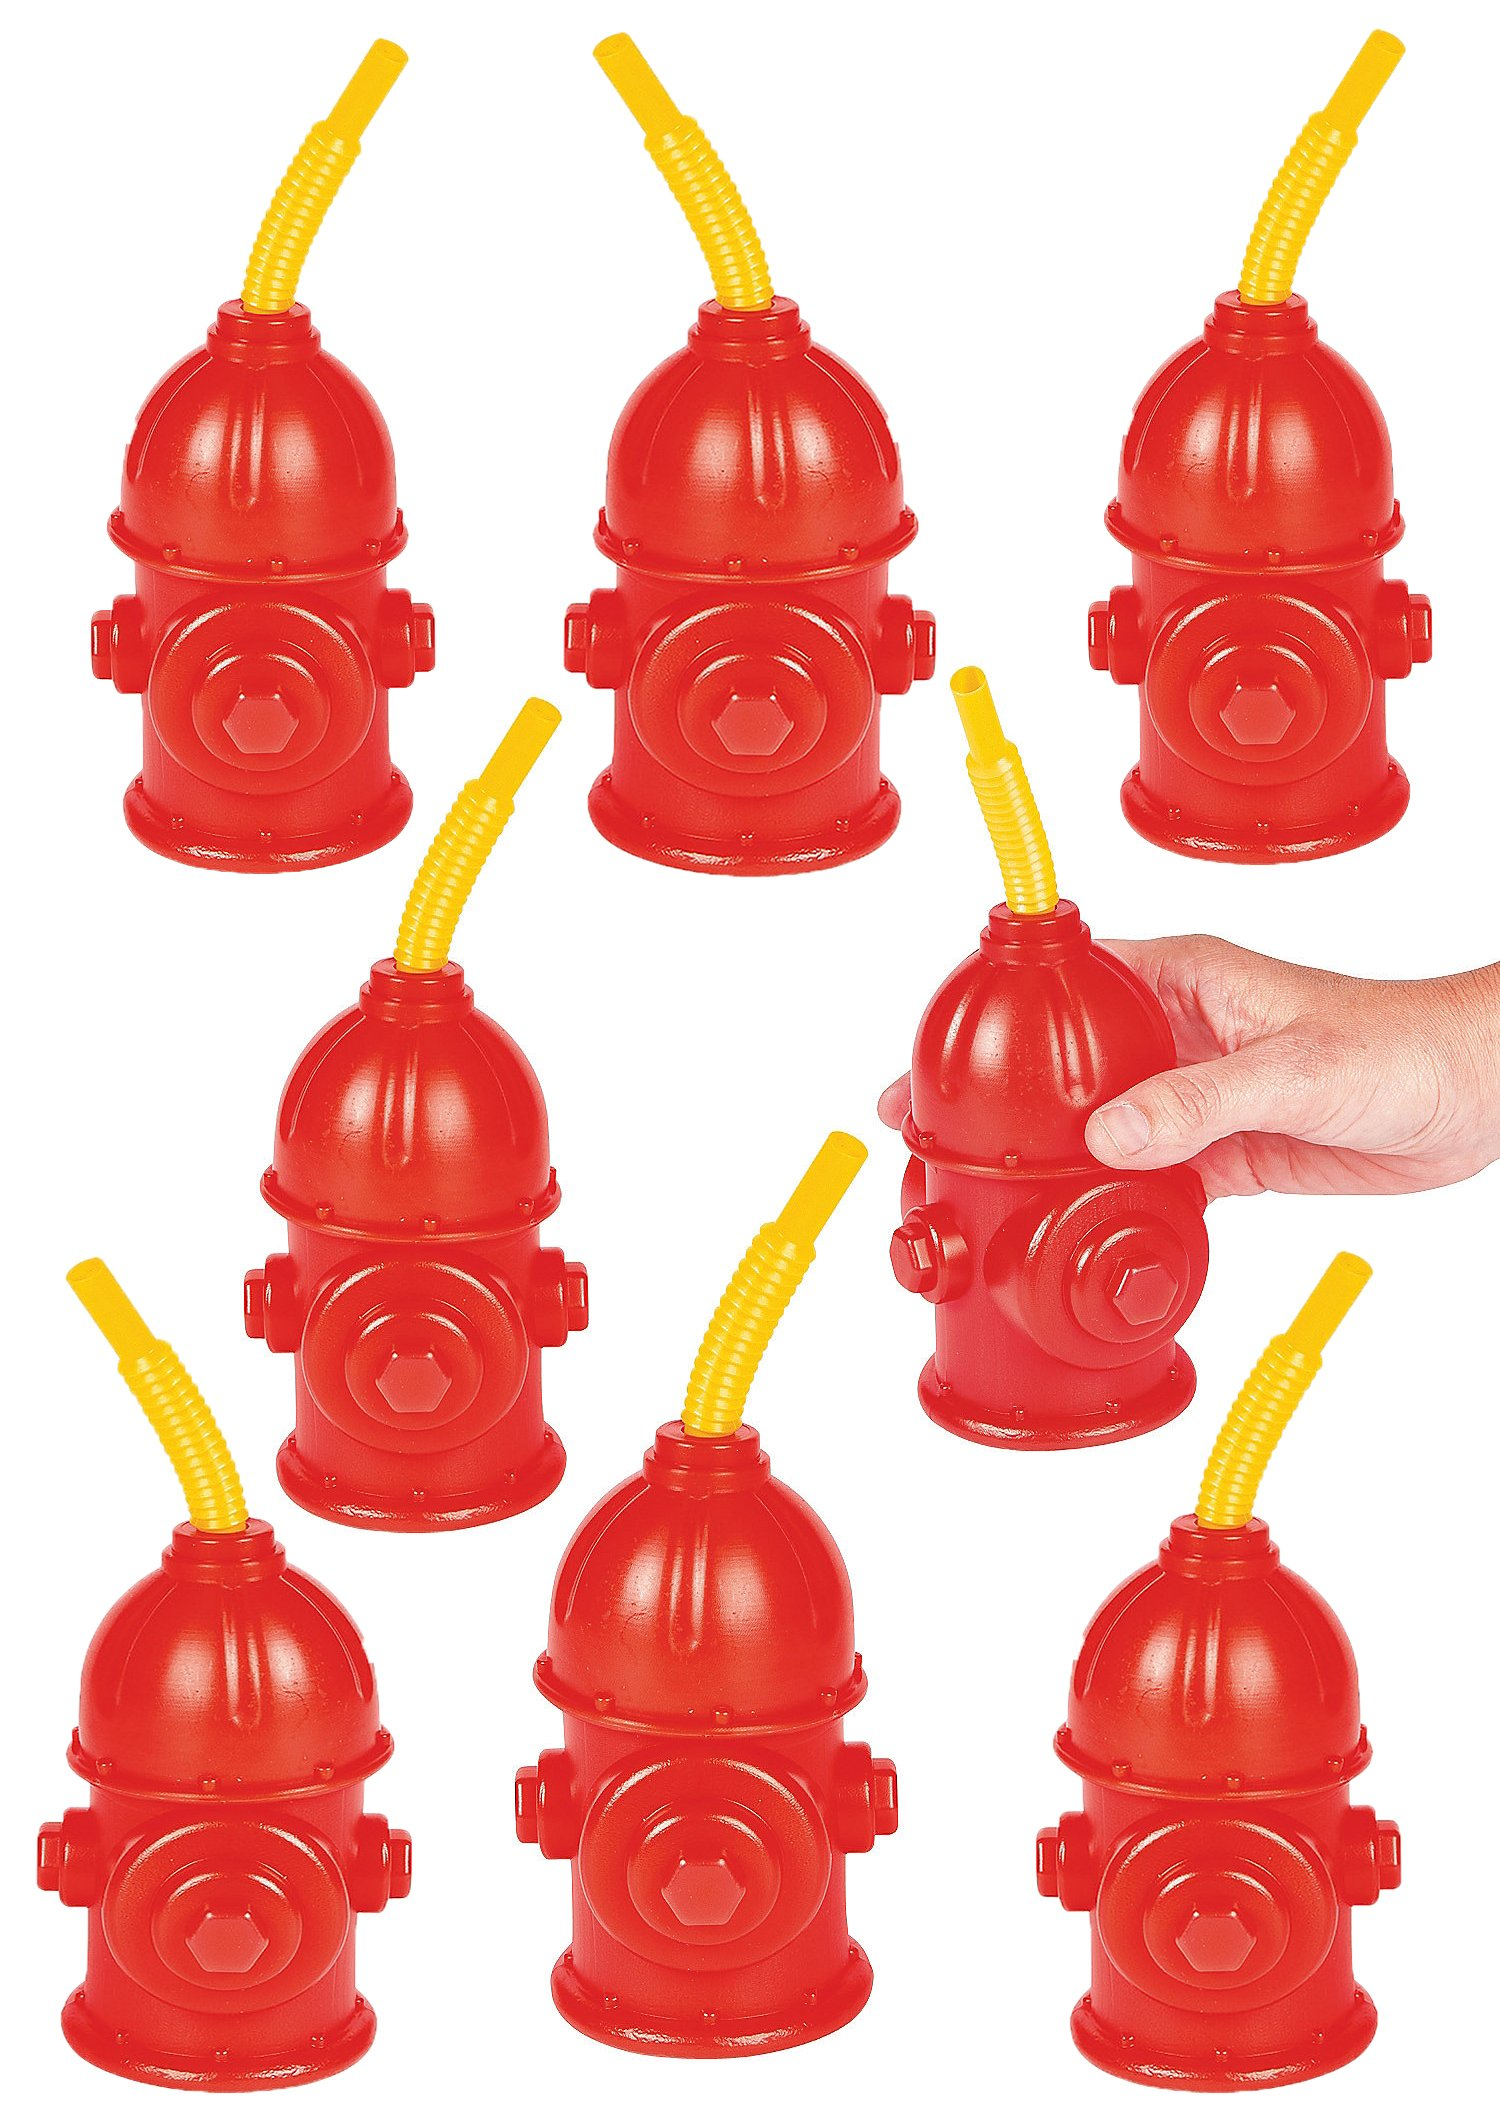 Firefighter Birthday Party Favors Supplies For Kids Fire Hydrant Cups With Straws Pack of 8 Plastic Fireman Cups with Straws, By 4E's Novelty